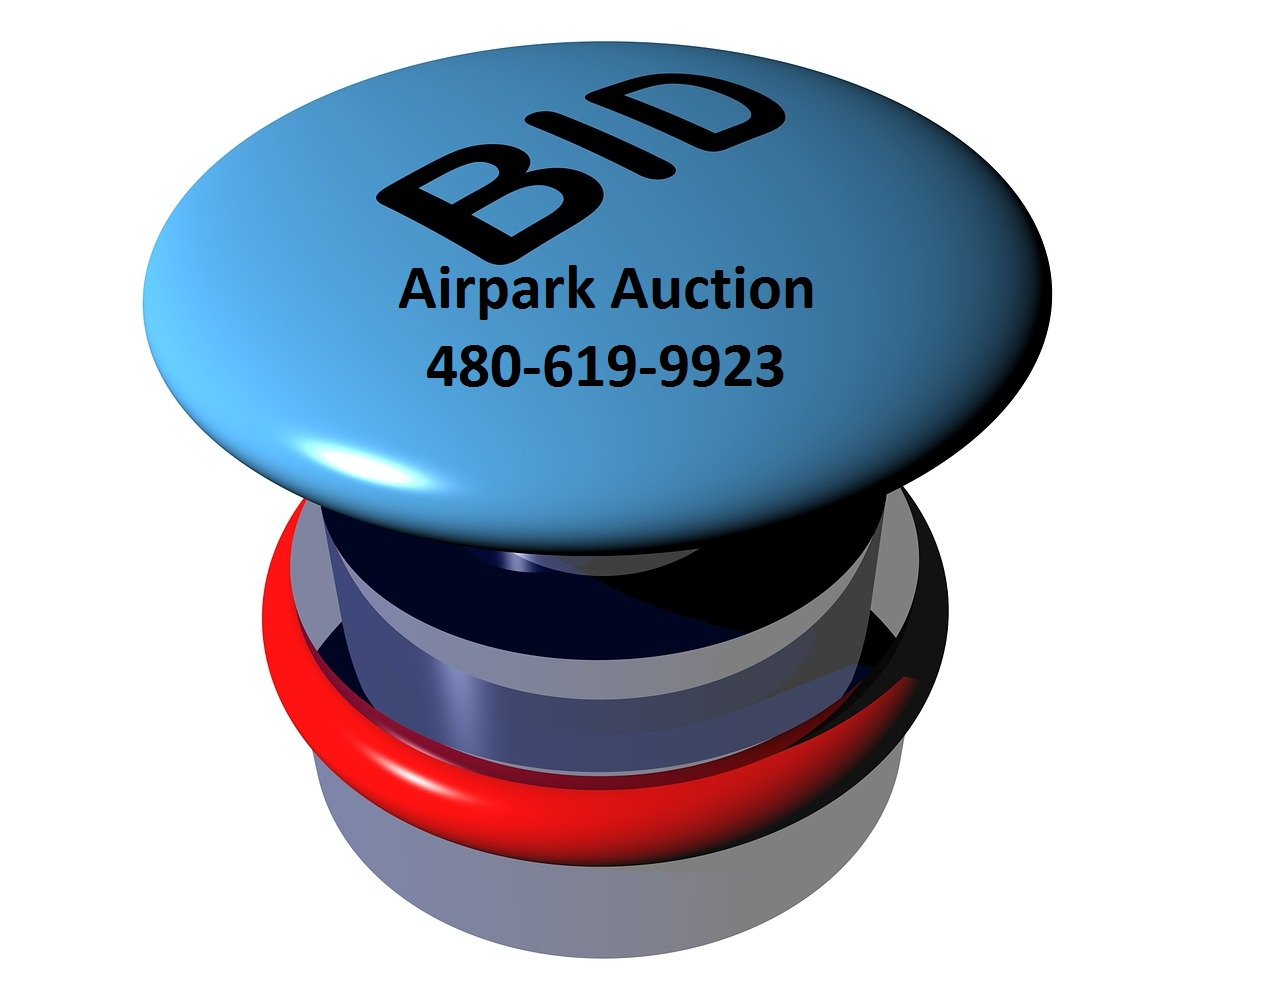 AIRPARK AUCTION